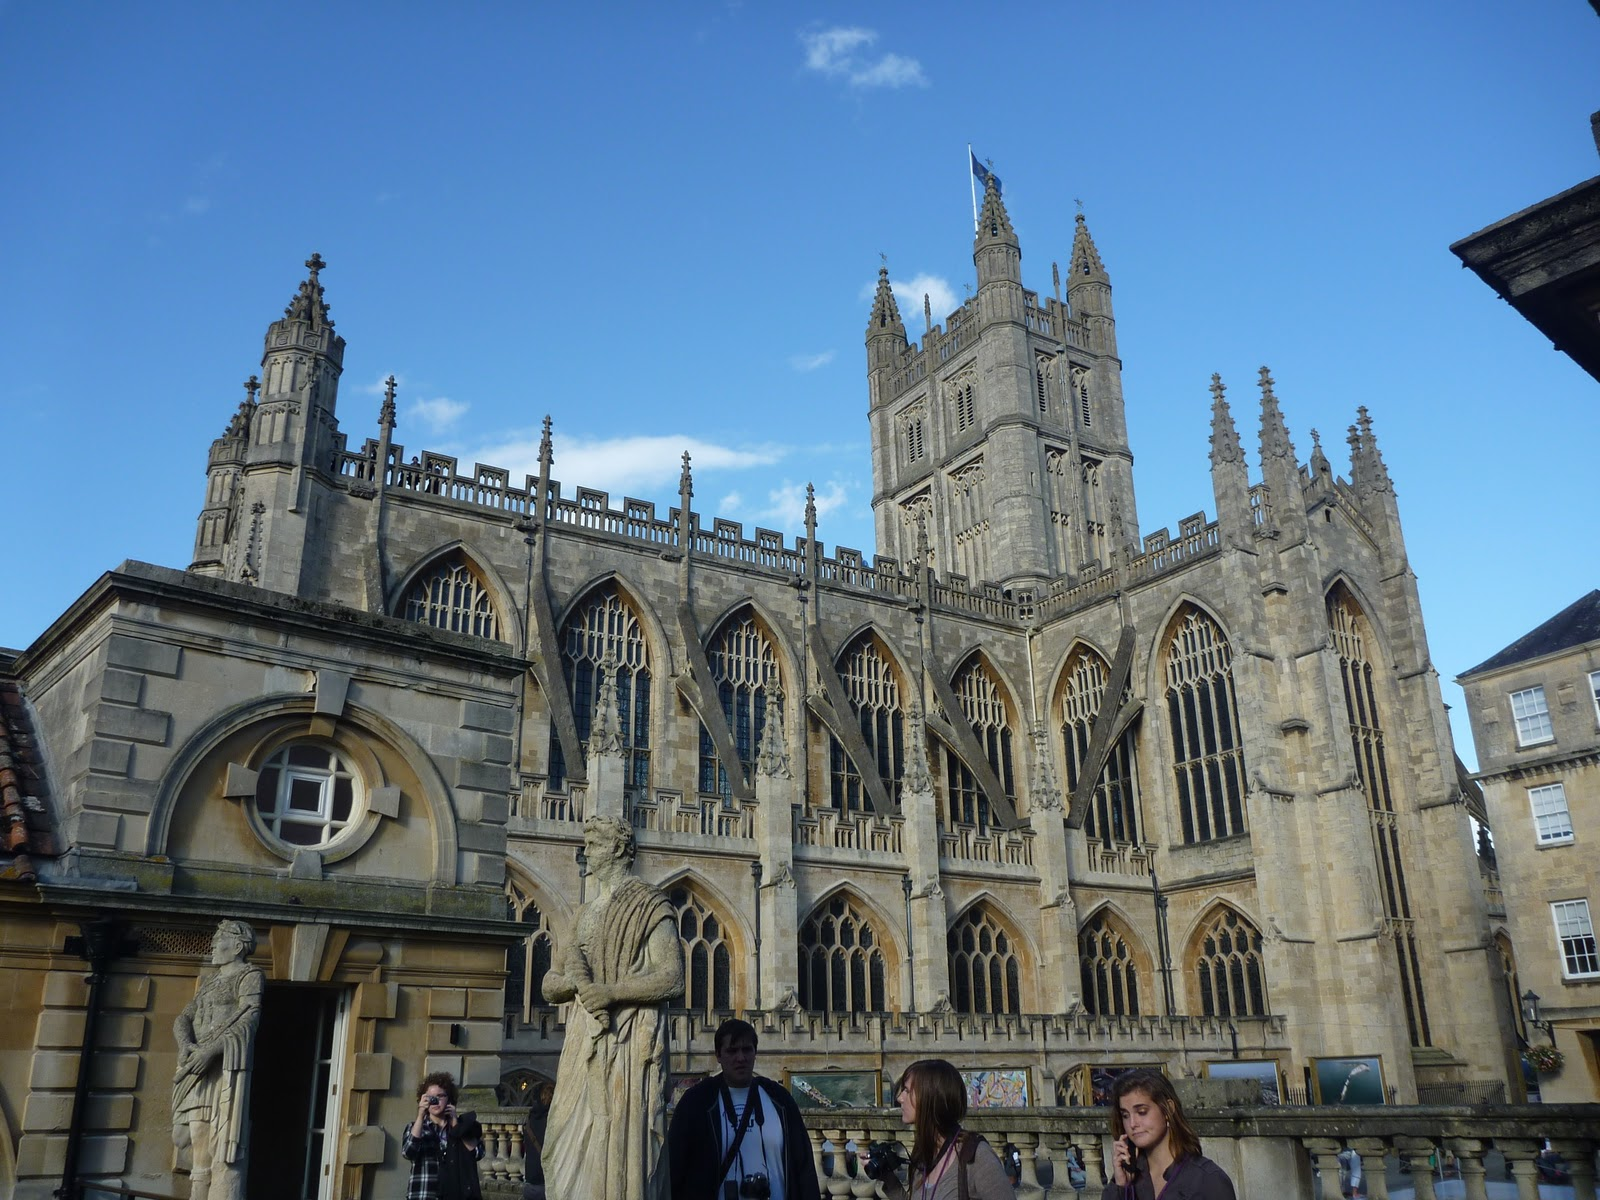 A Voyage Abroad: Durham Cathedral & Bede's World